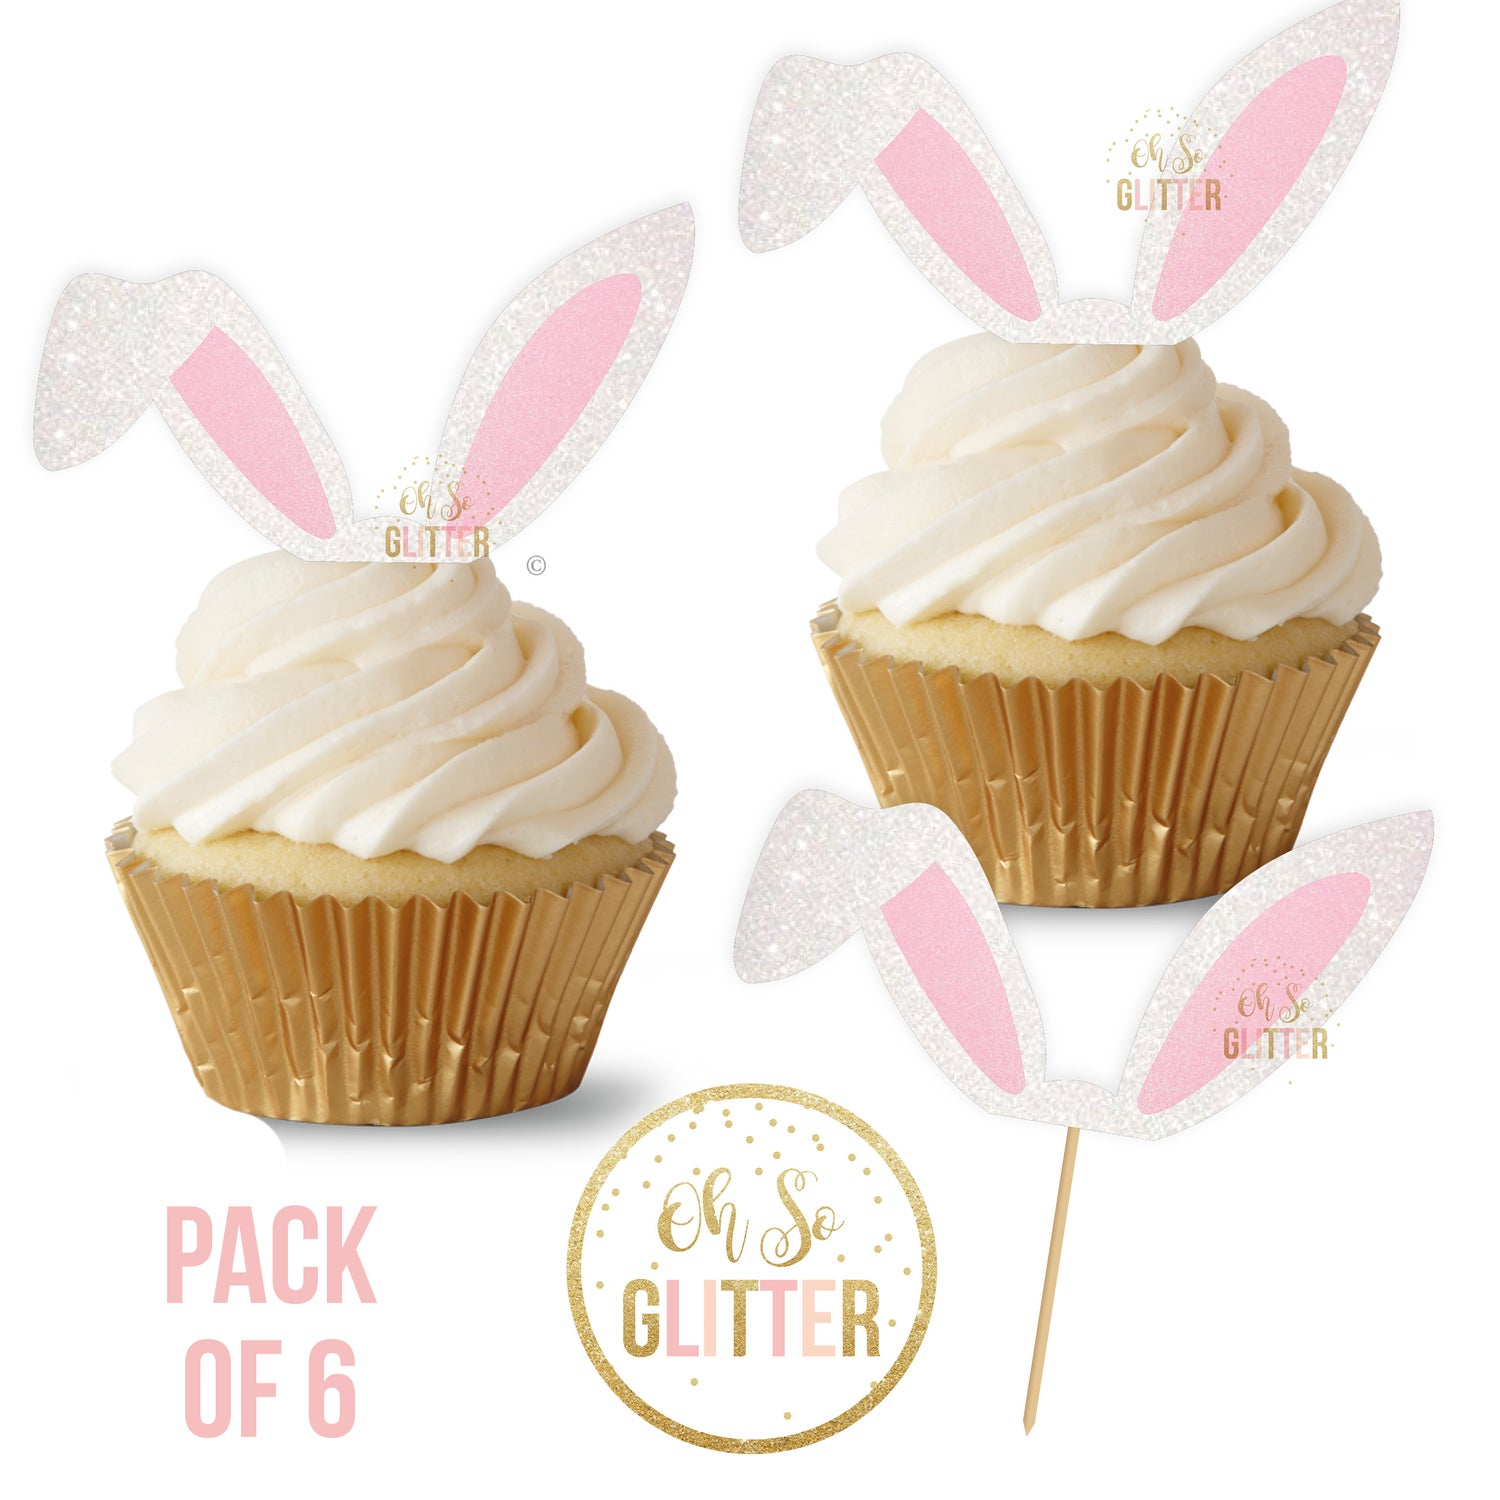 Image of Bunny Ears cupcake toppers